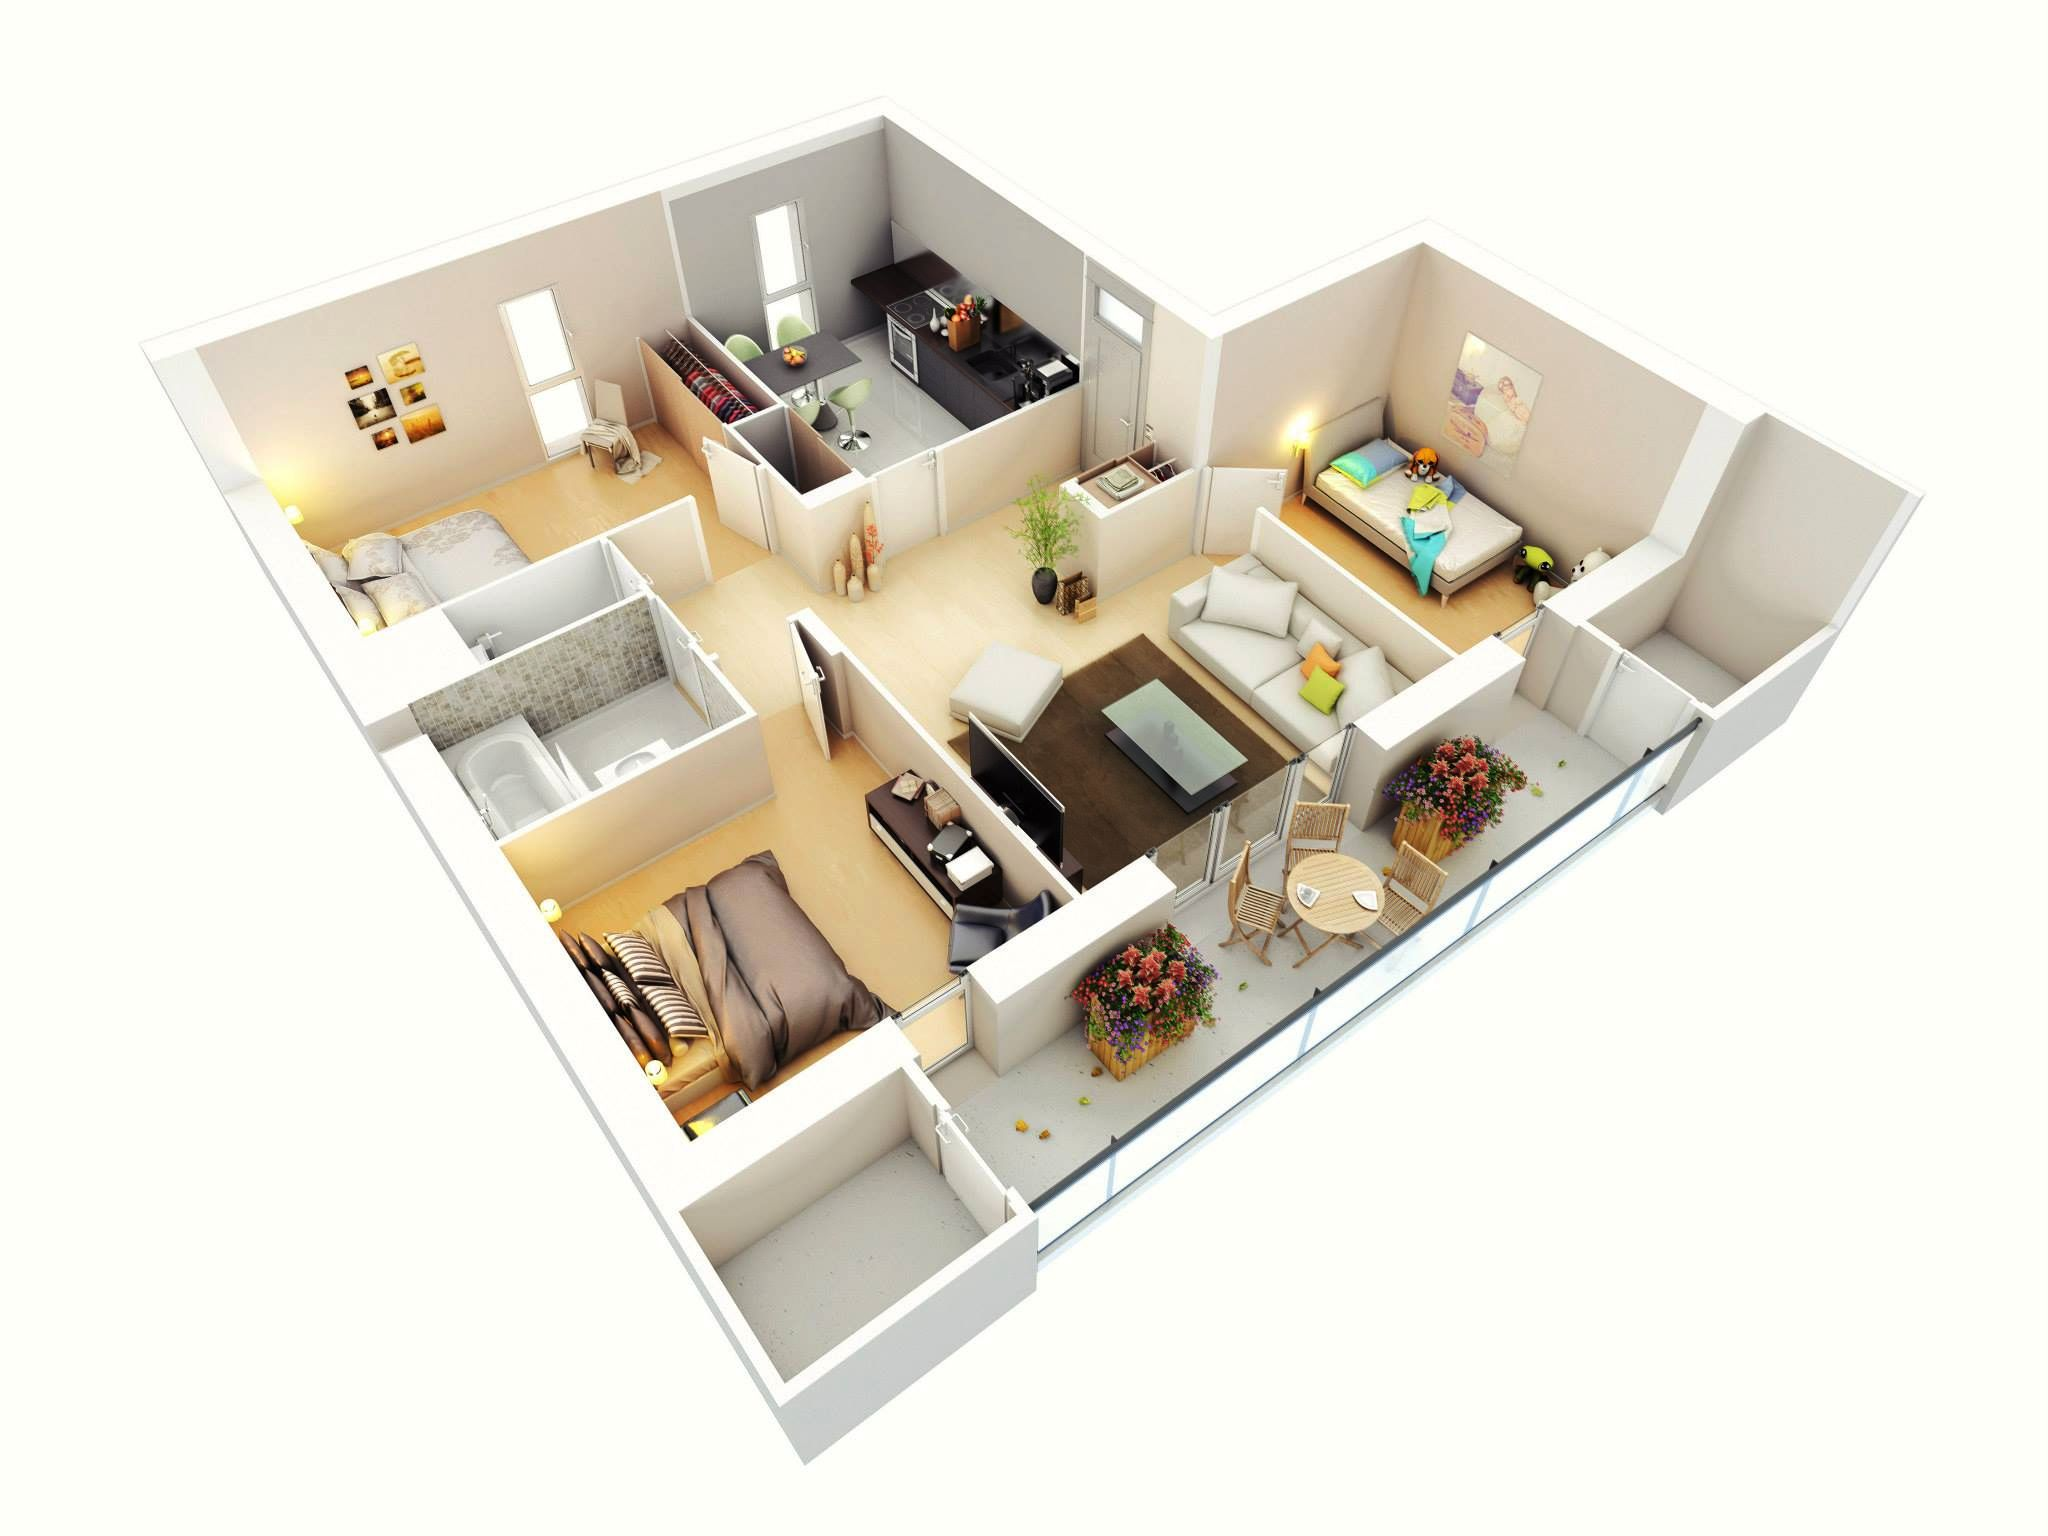 3 Bedroom Floor Plans.